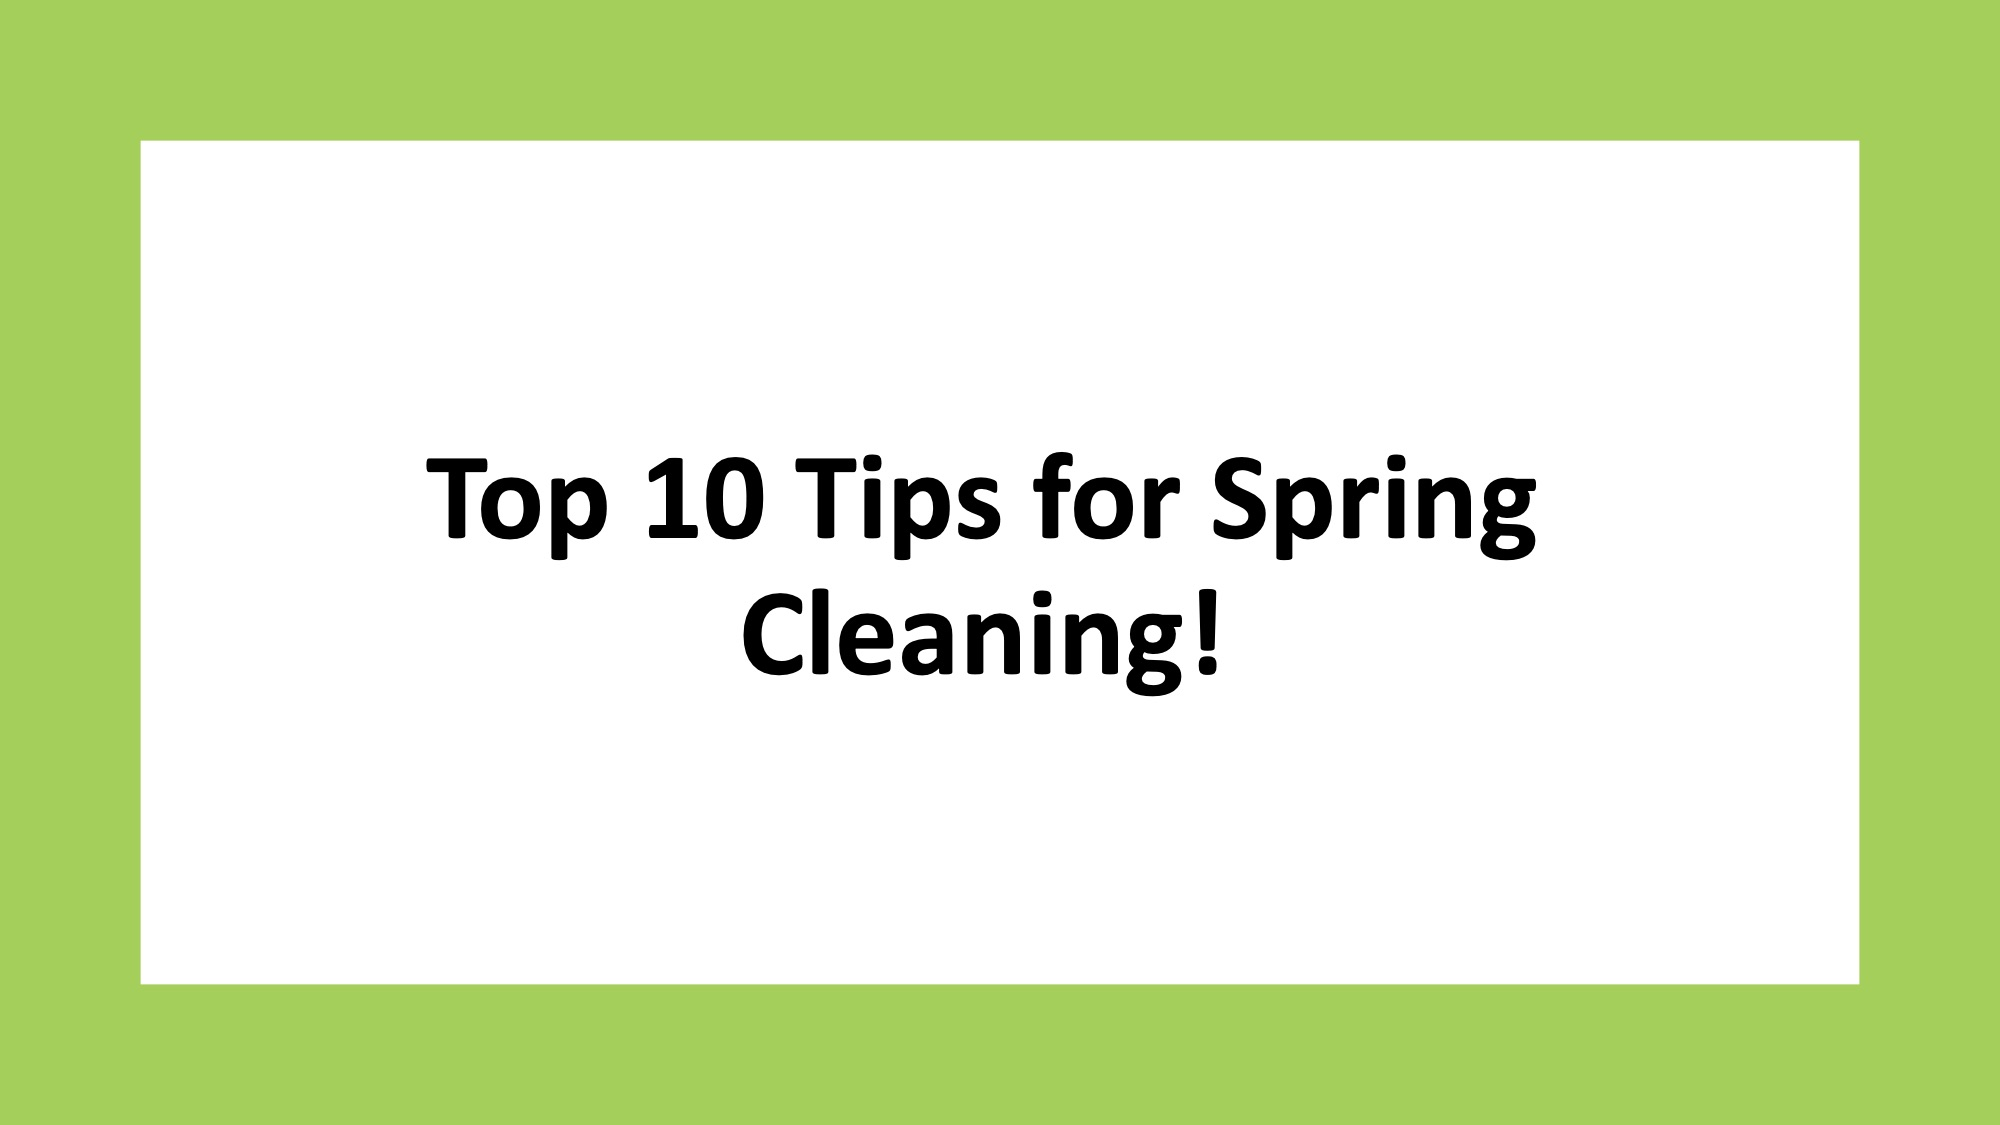 Top 10 Tips for Spring Cleaning!